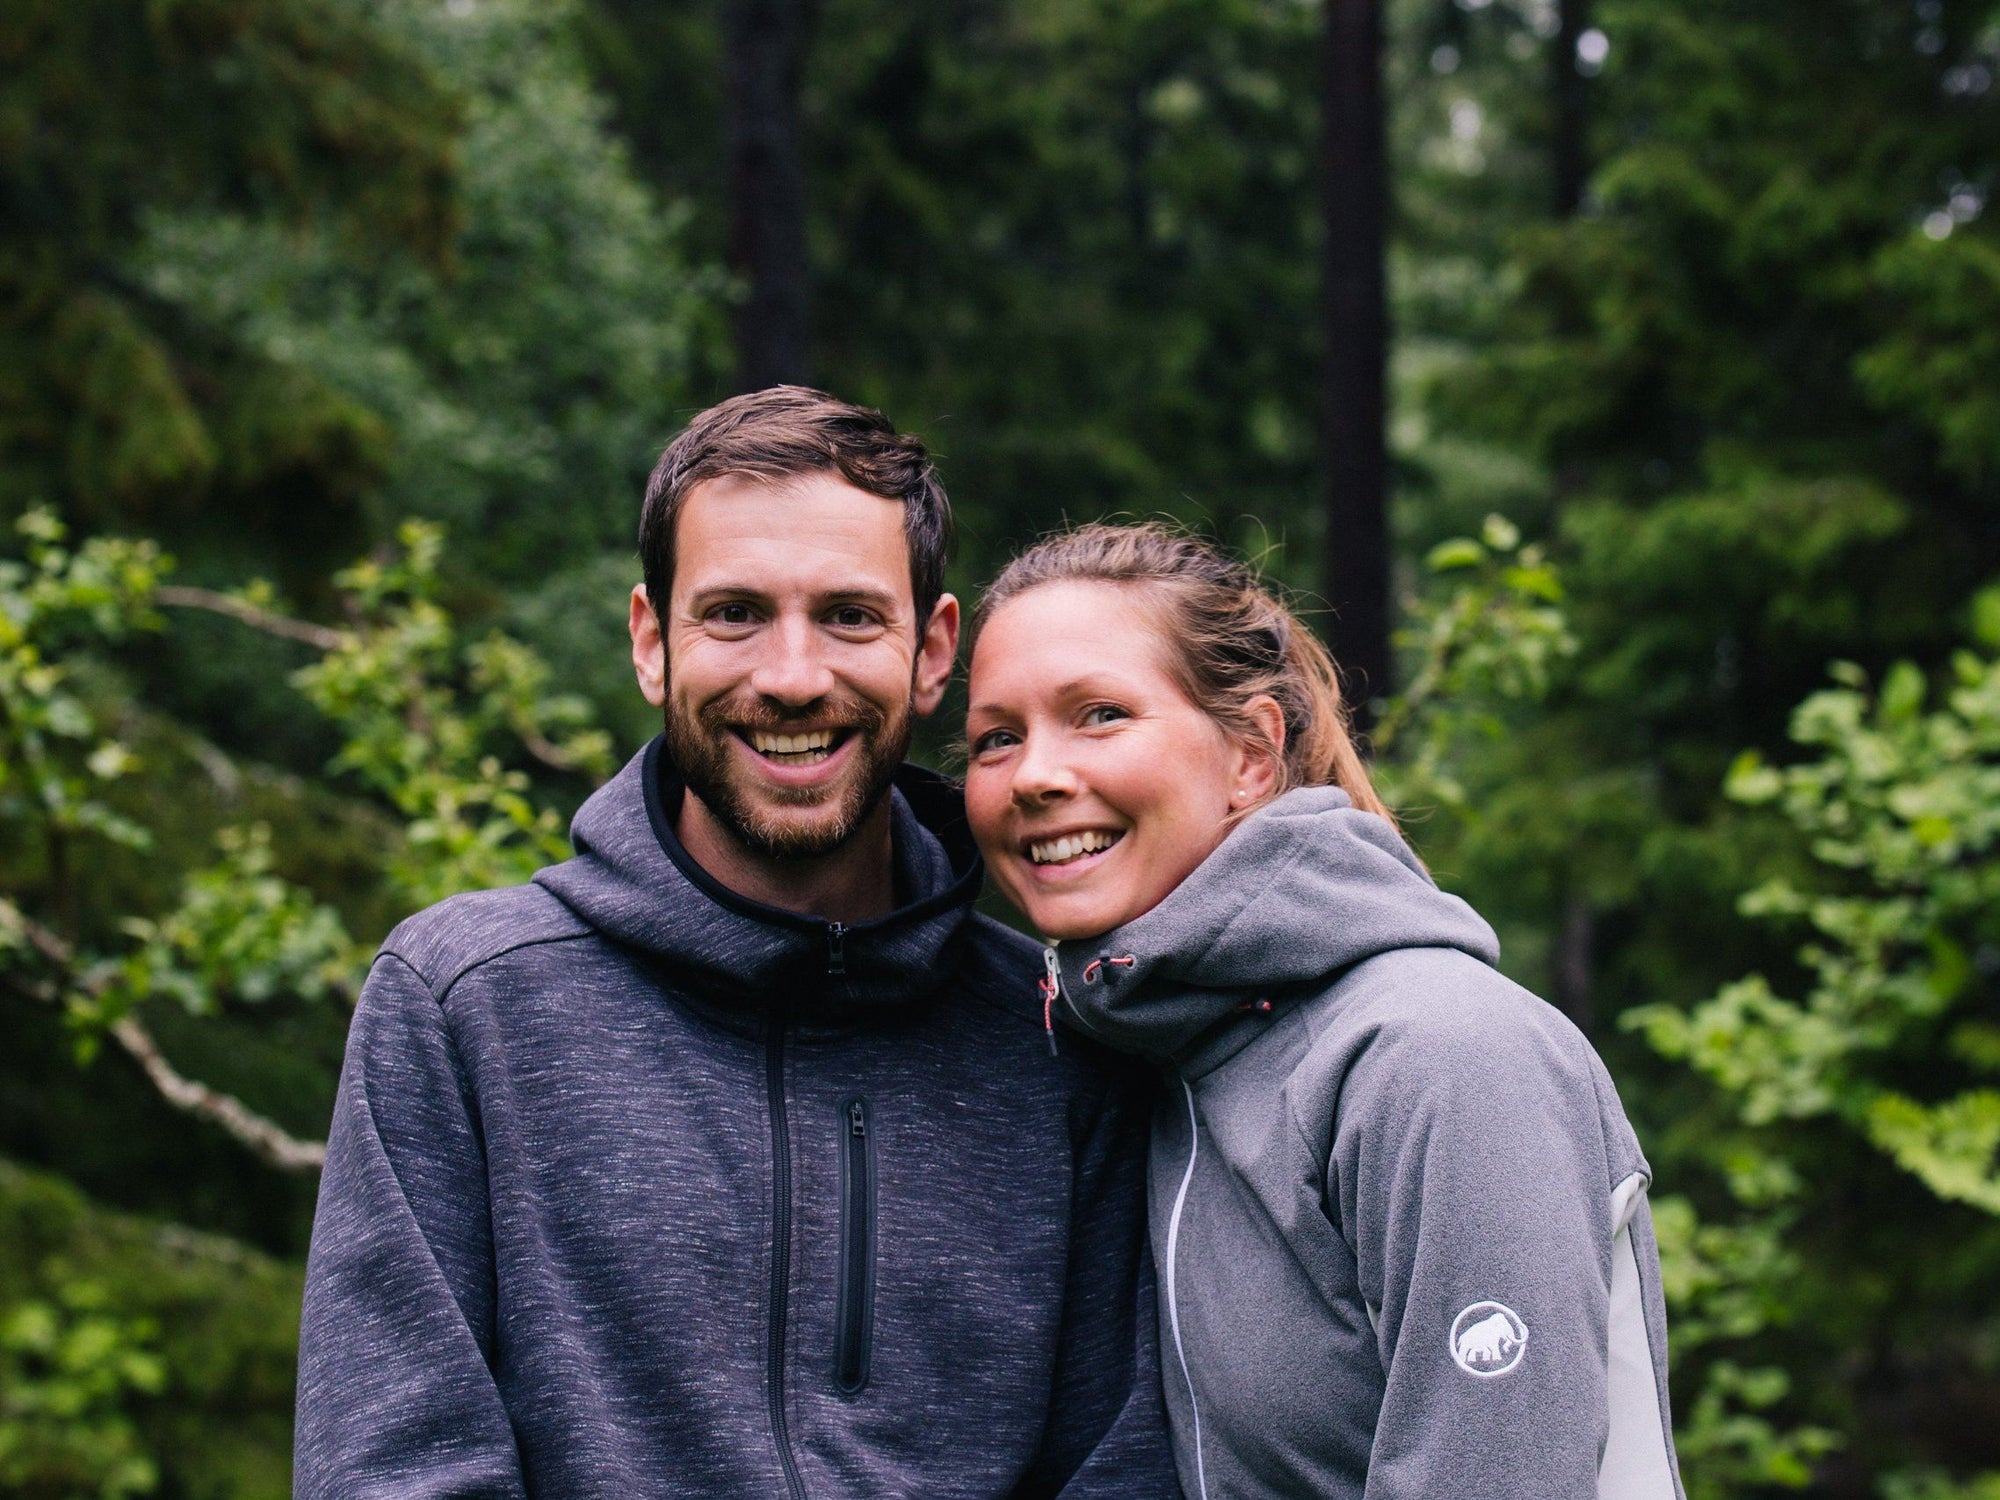 Slow Living and Distance Running - Introducing Runners Sophia & Michael Living Sustainably in the Swedish Countryside